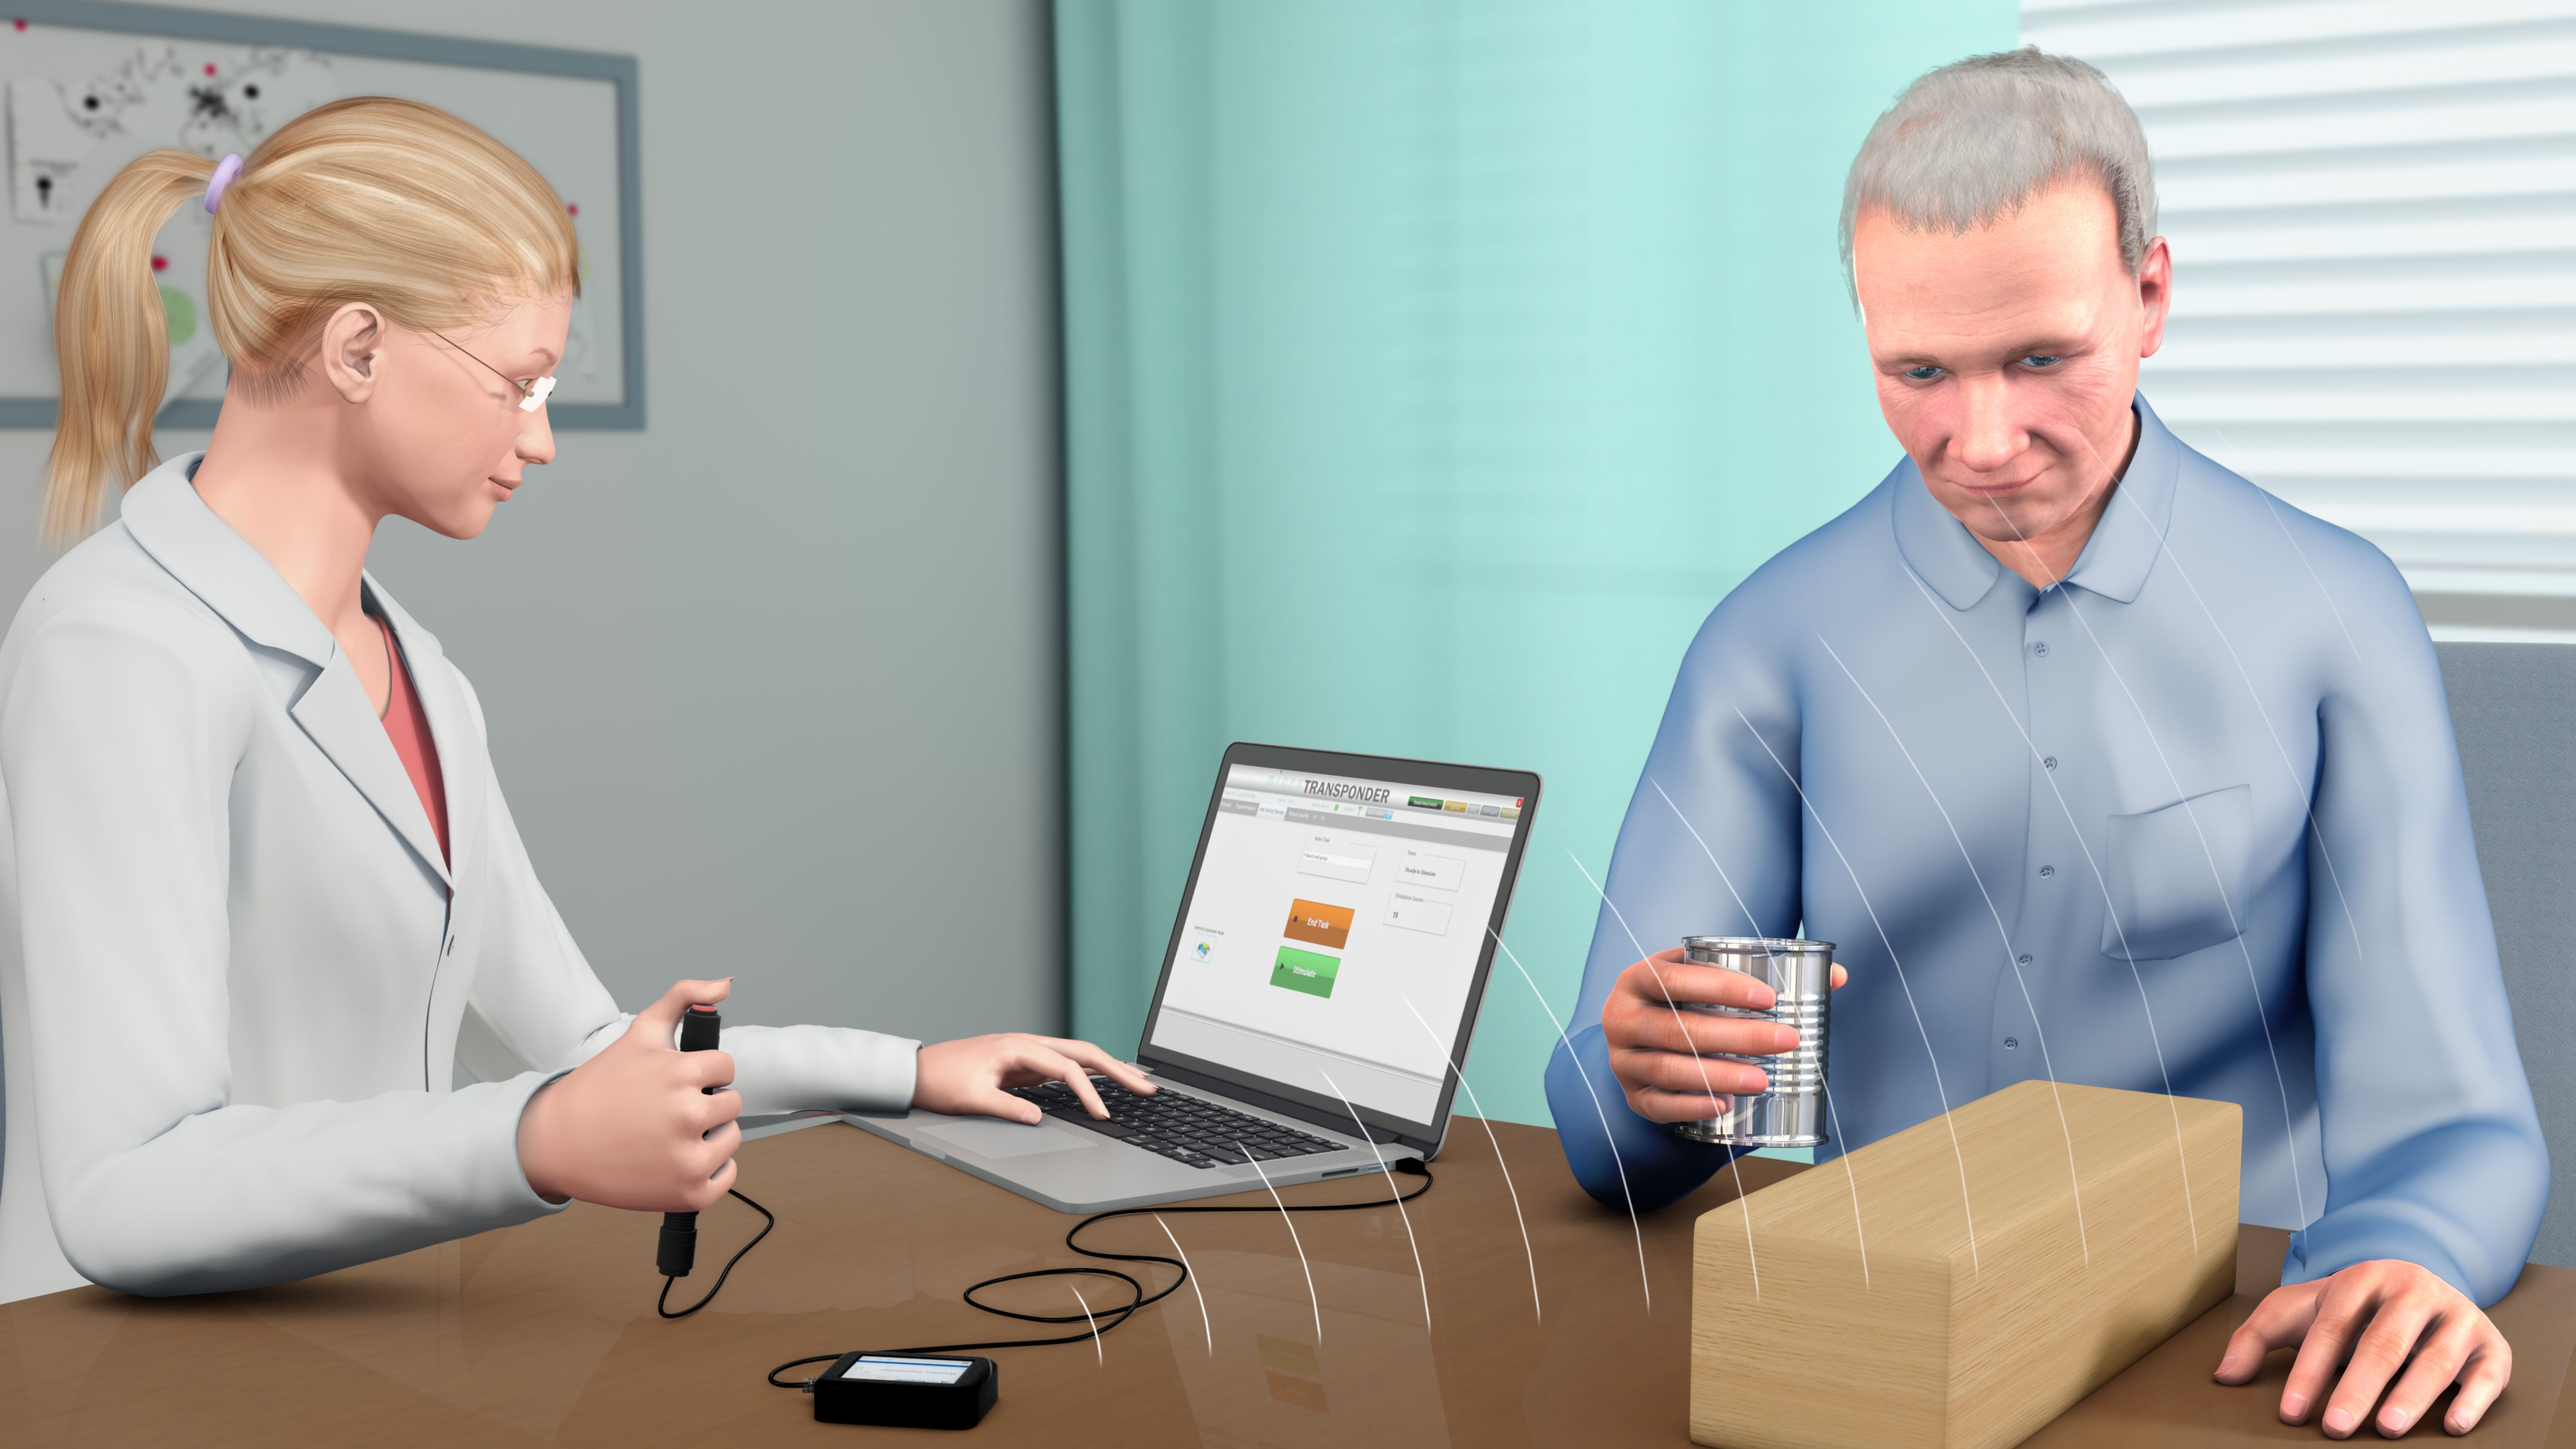 A cartoon of a woman in a lab coat and a man in a blue shirt. The woman is holding a button in one hand and looking at a computer. The man is picking up a glass of water.